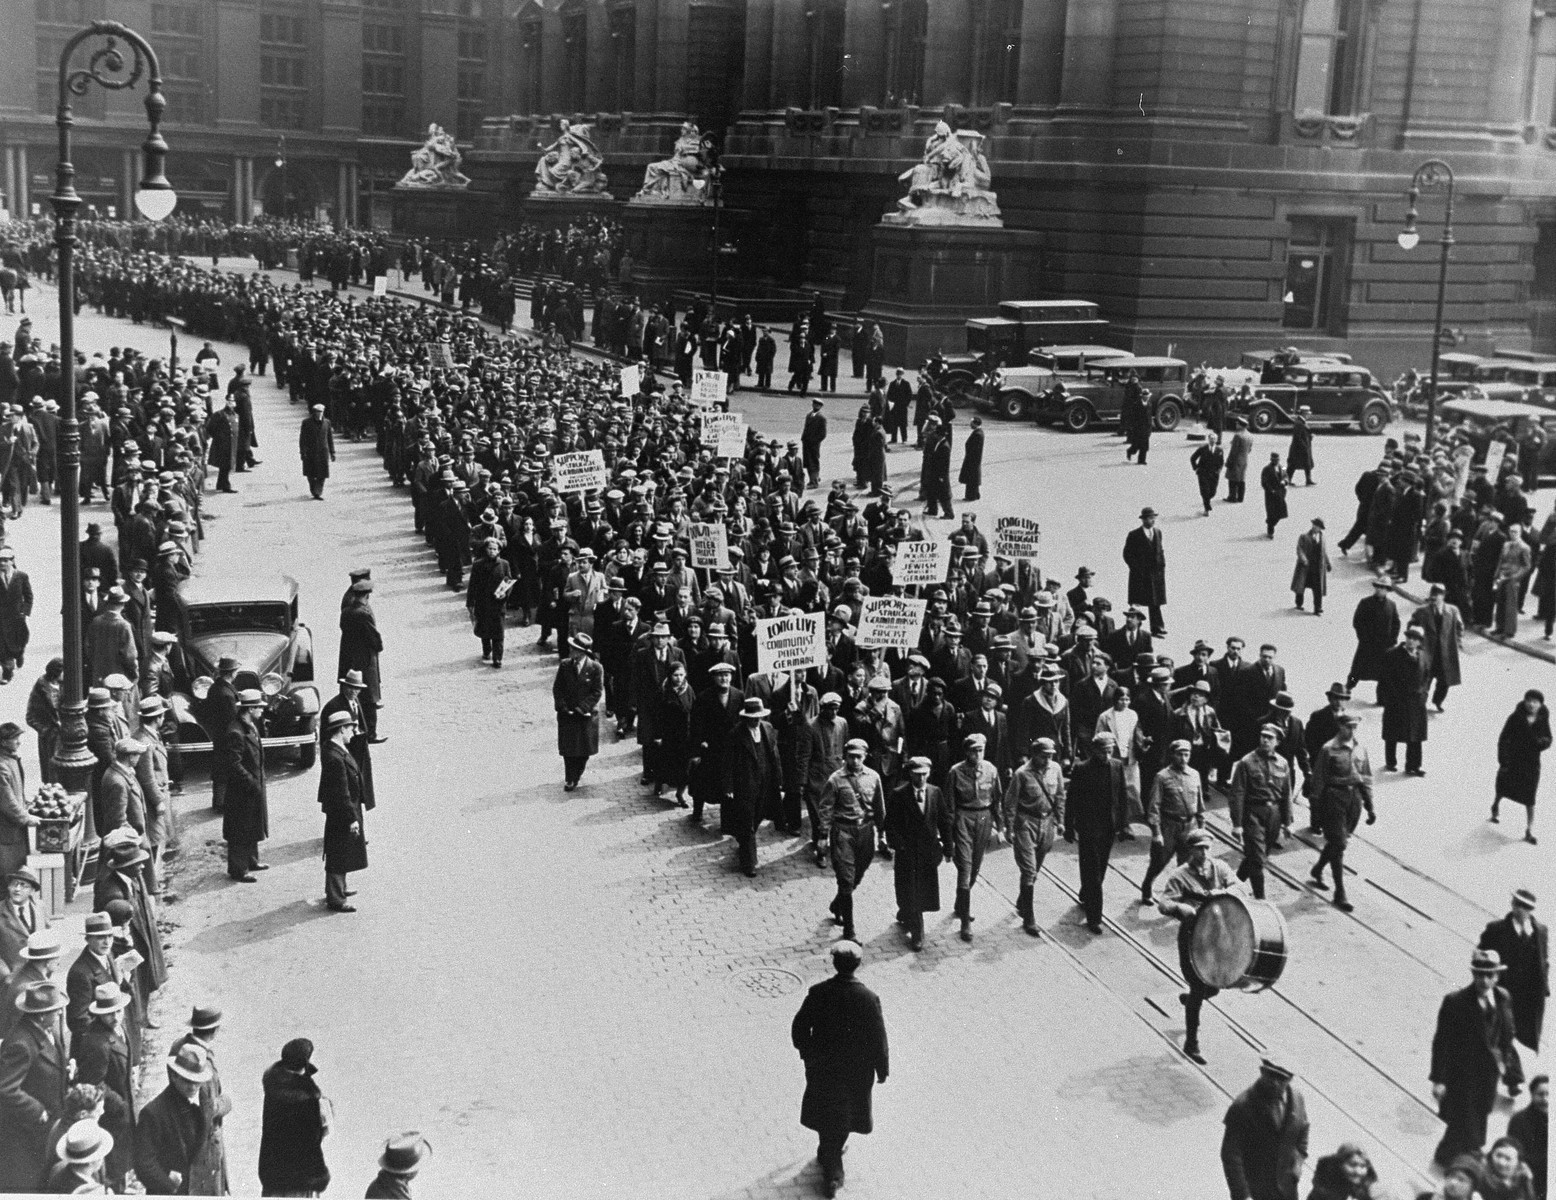 Members of the American communist party participate in a march through the streets of lower Manhattan to protest against the Nazi persecution of German Jews.